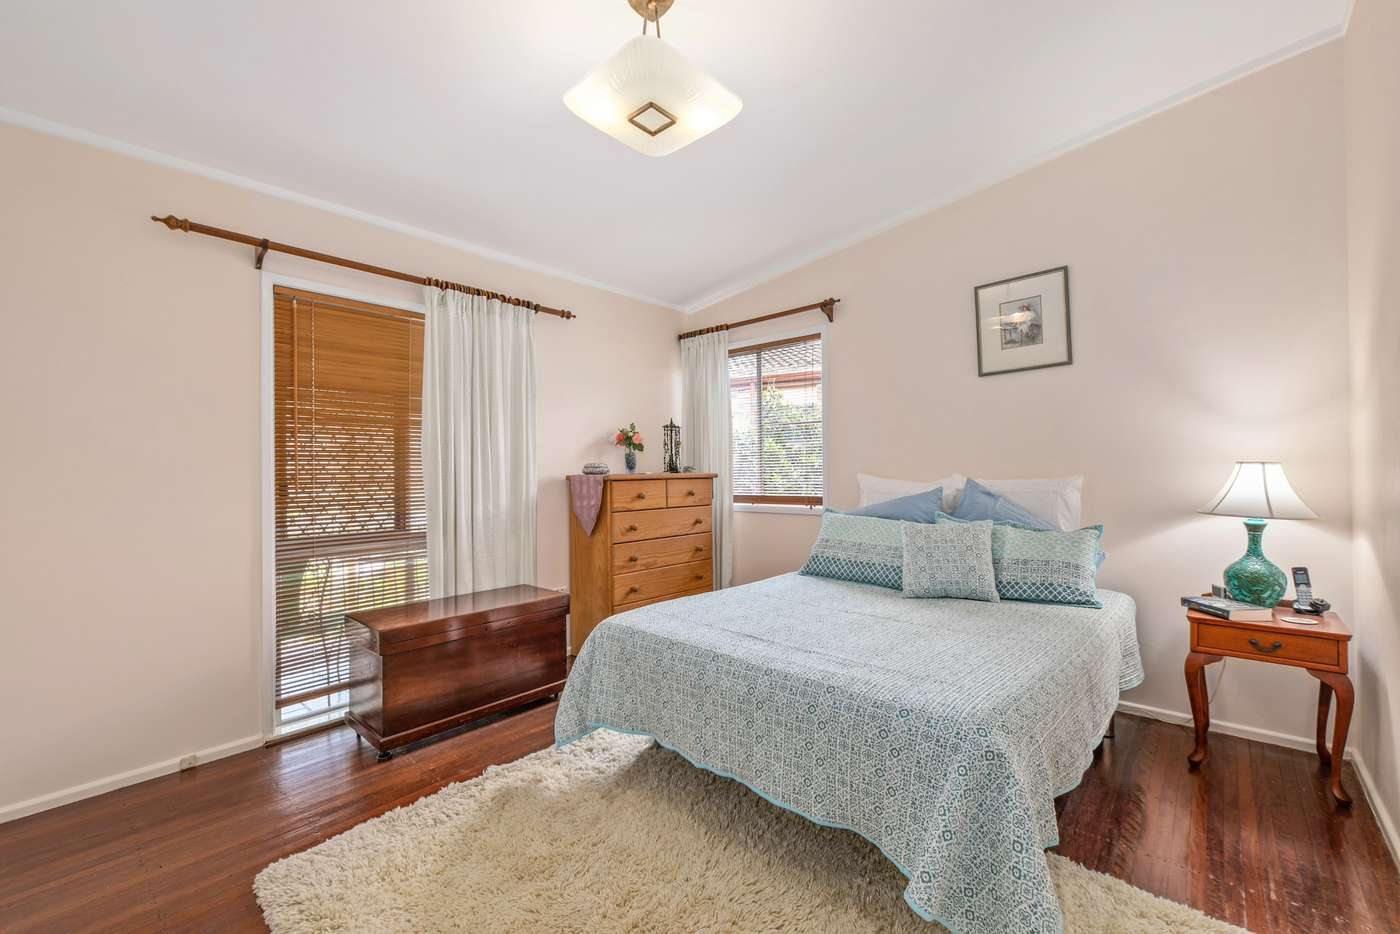 Fifth view of Homely house listing, 15 Goldie Street, The Gap QLD 4061